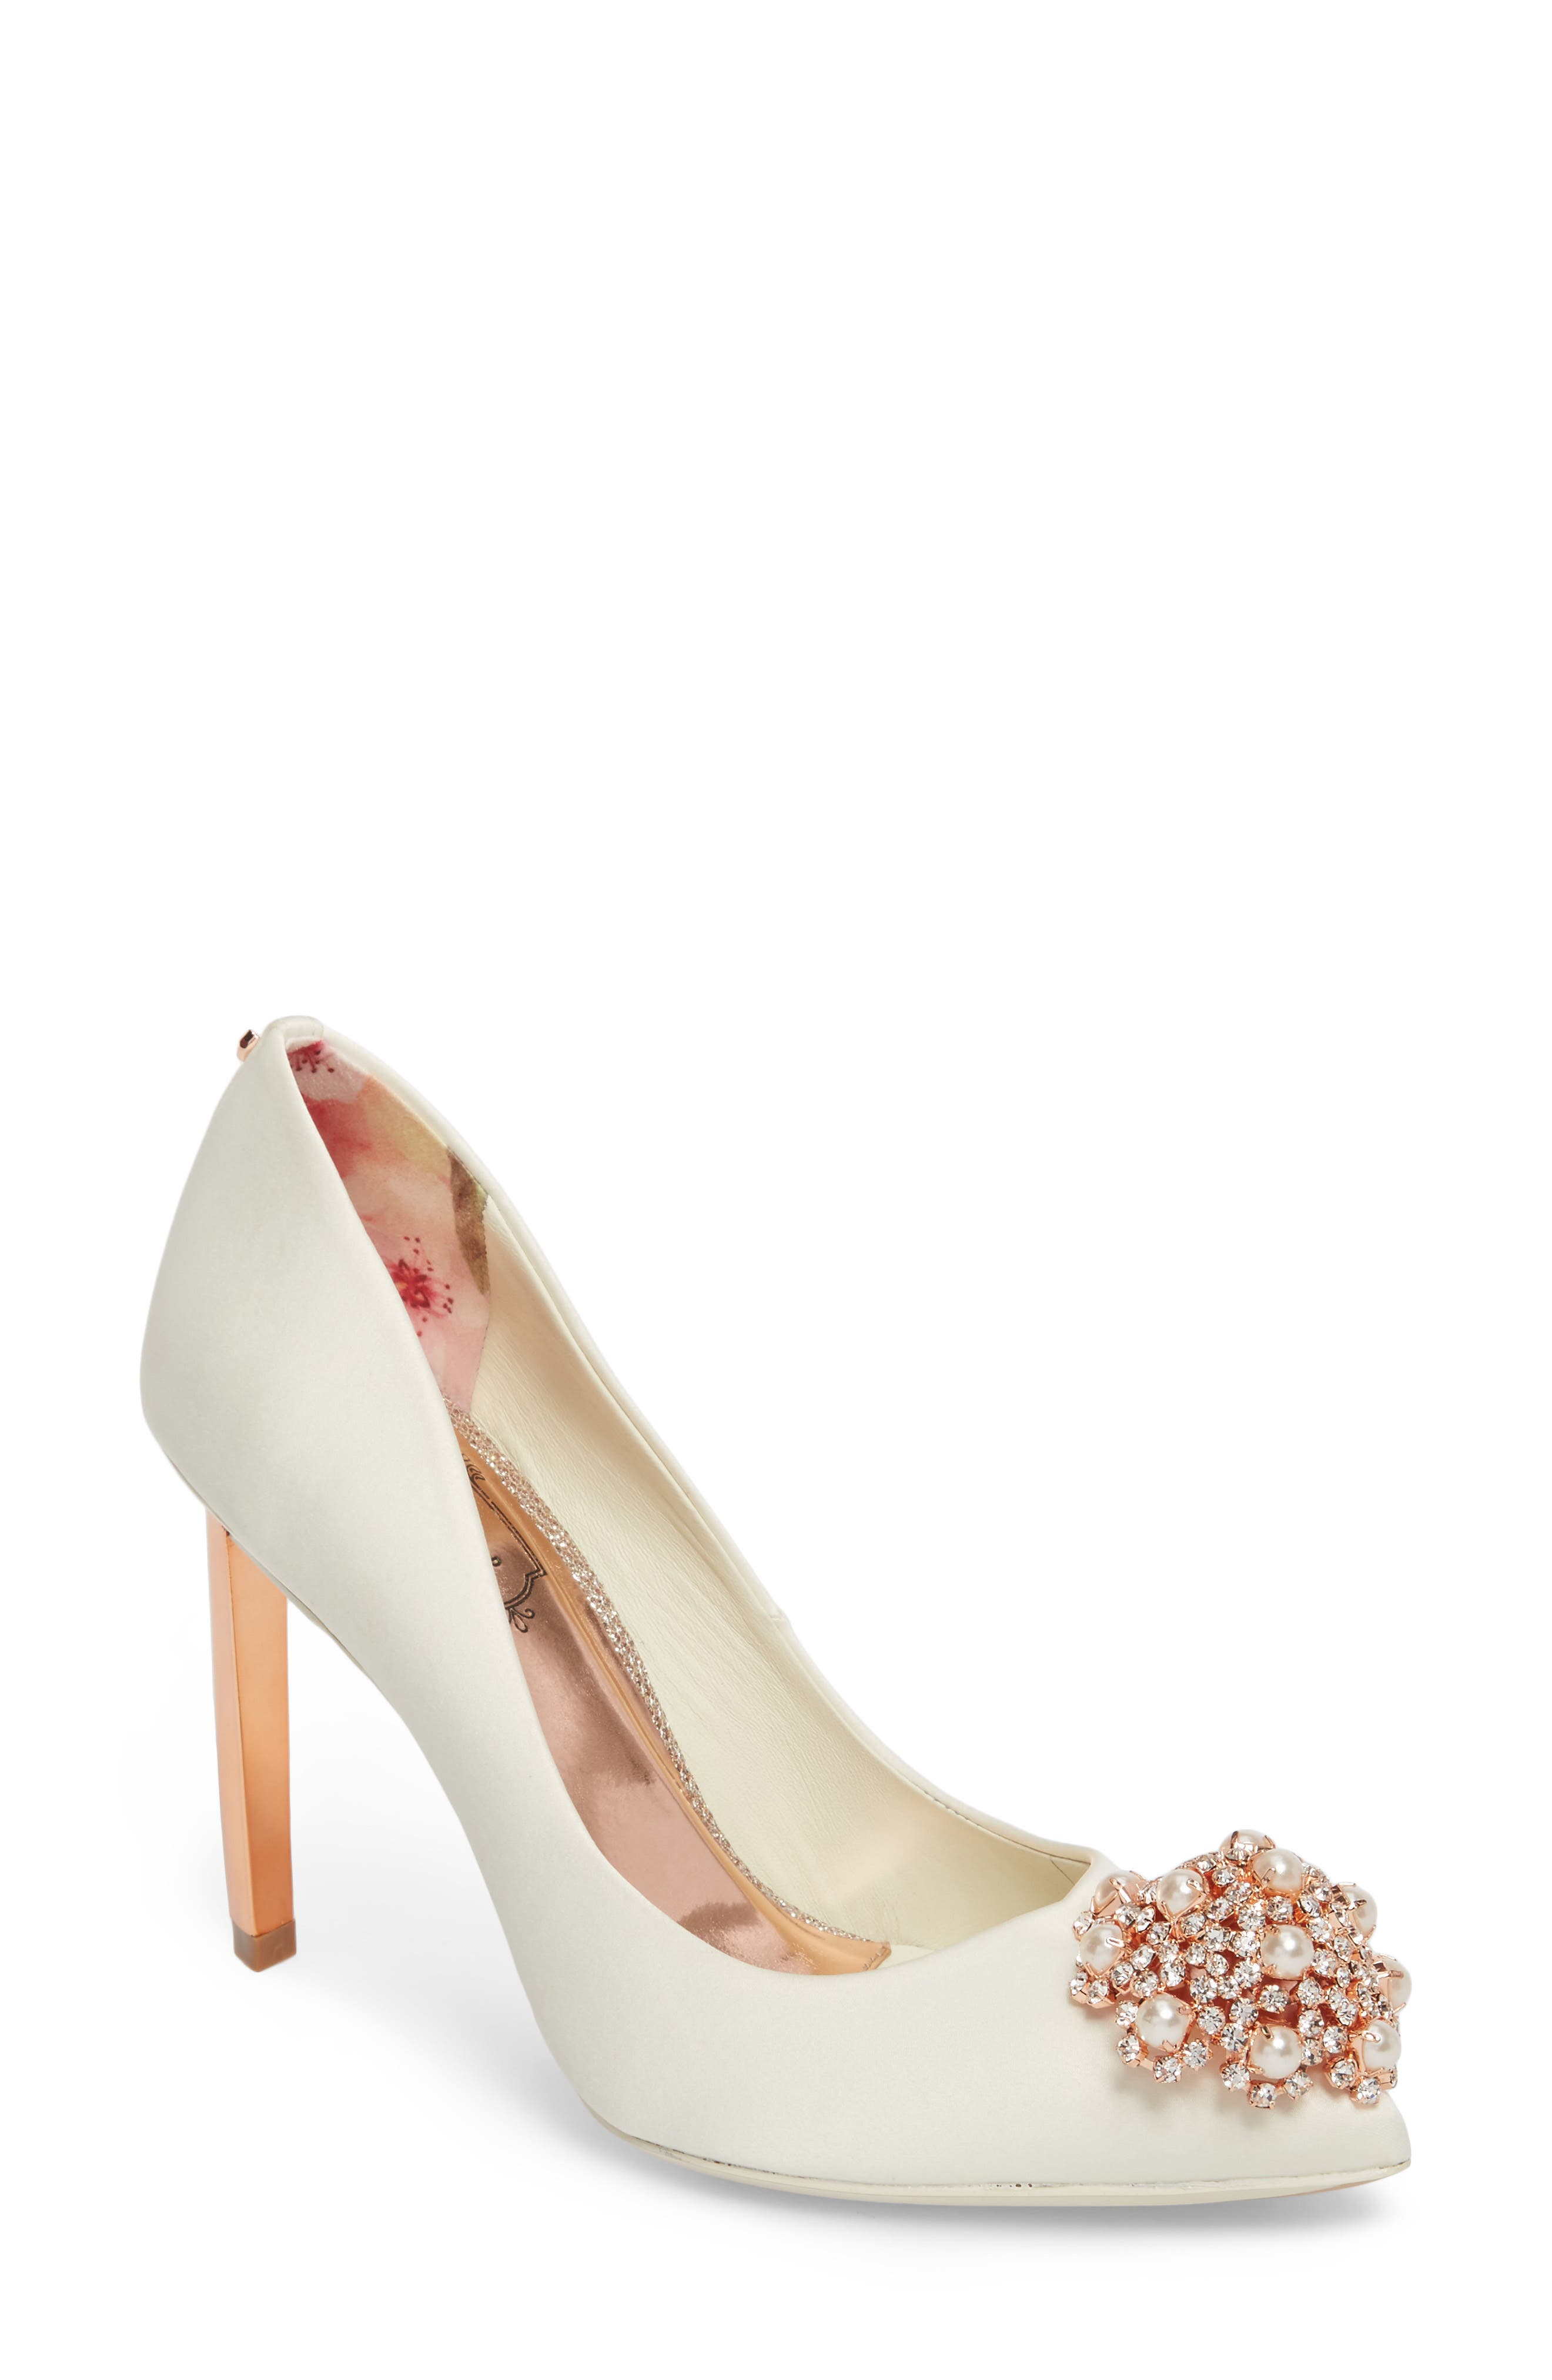 'Peetch' Pointy Toe Pump,                         Main,                         color, Ivory Satin